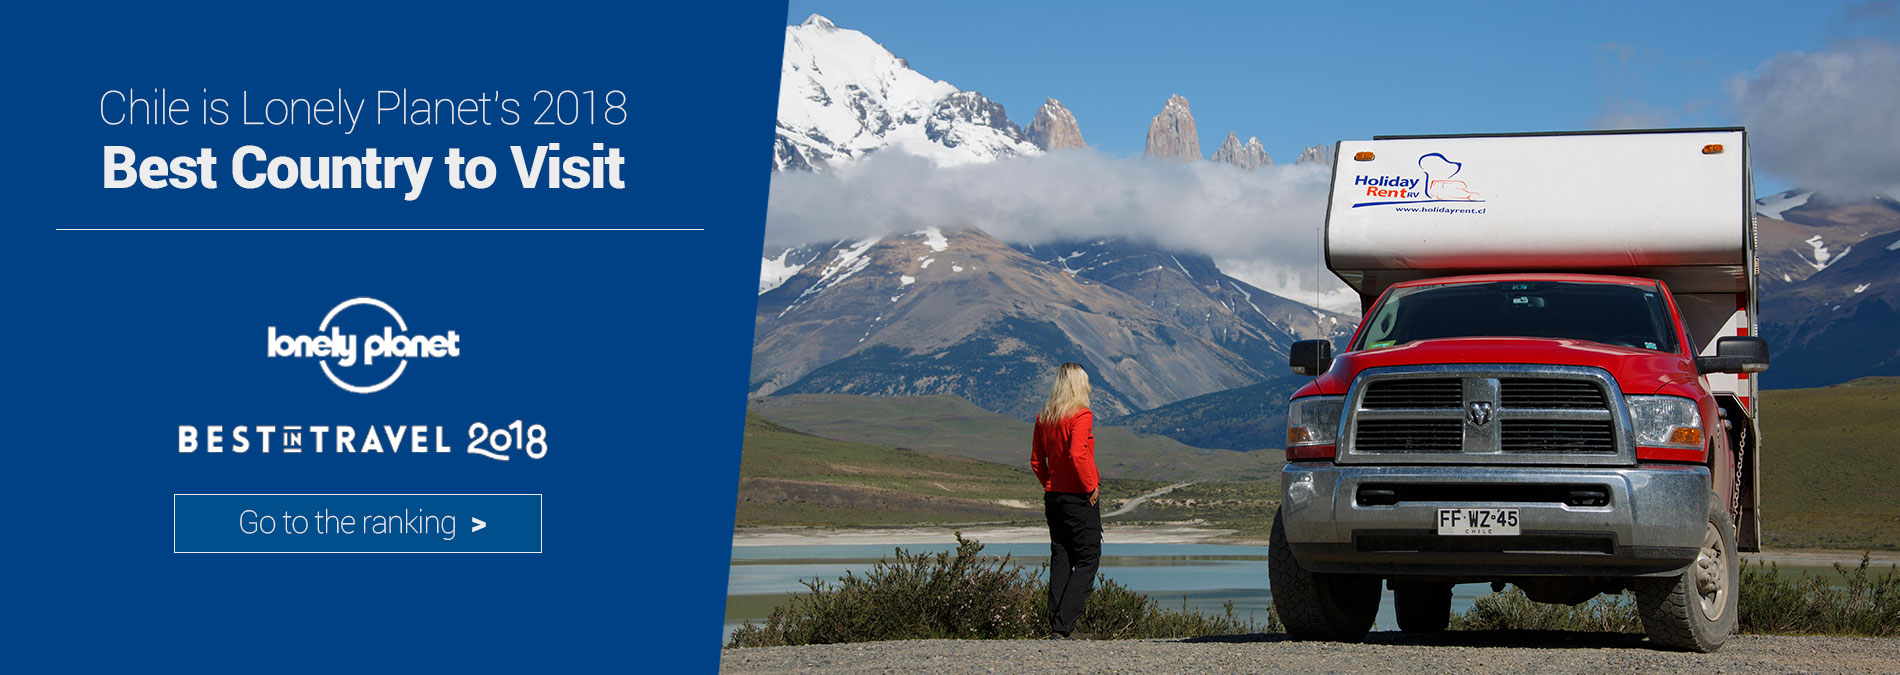 Chile 2018 best country tu visit